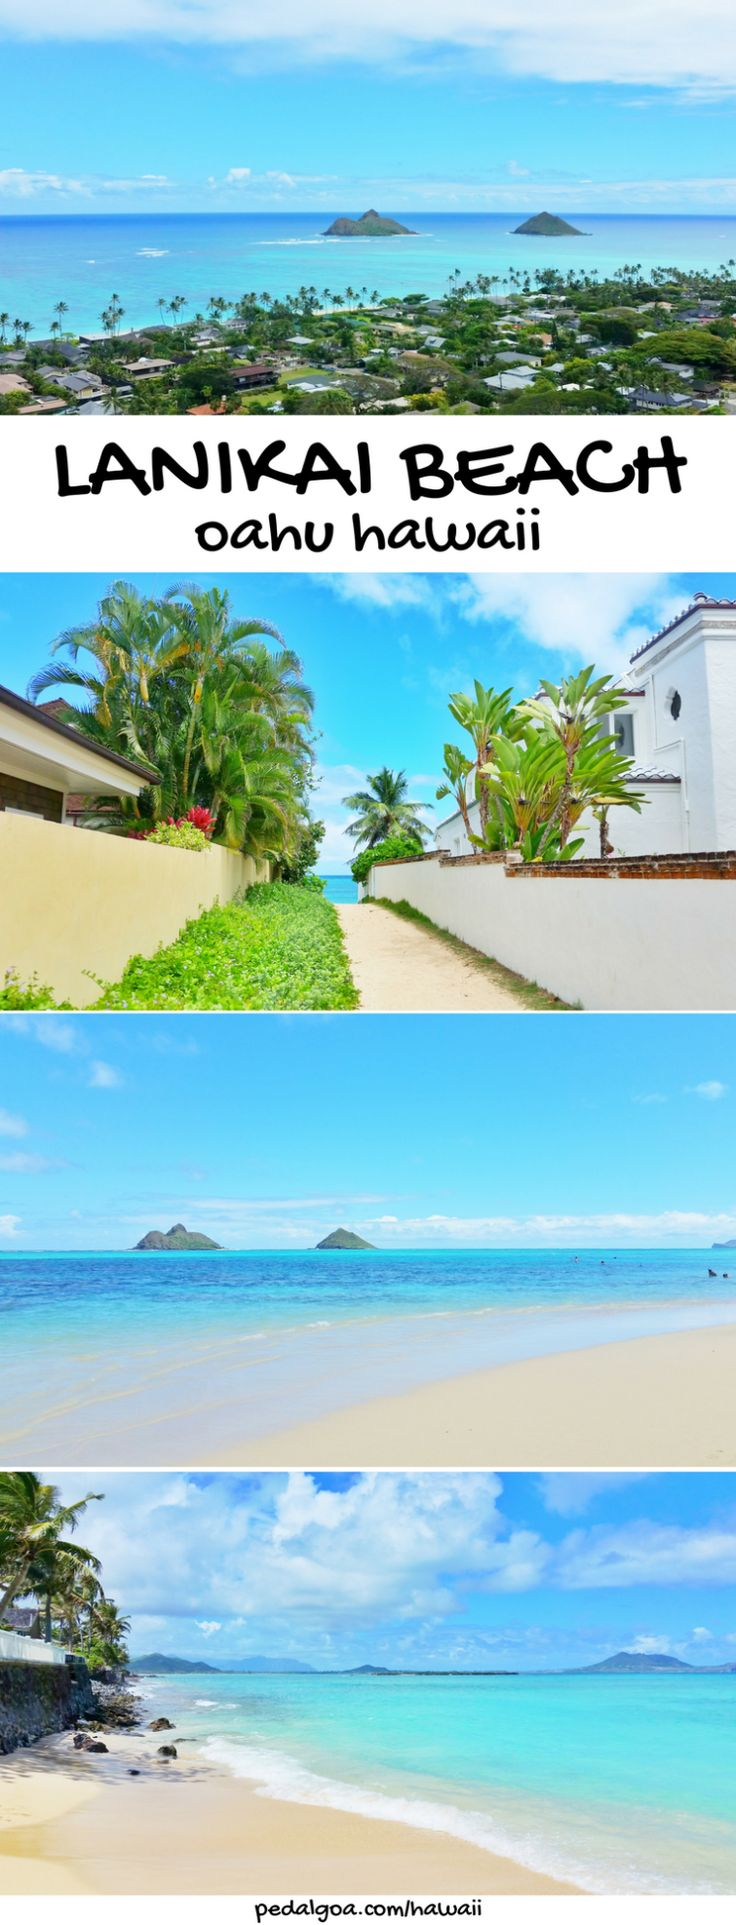 East Oahu, Windward Oahu, Hawaii: Lanikai Beach, Kailua.  Things to do in Oahu with pillbox hiking trail, beaches, snorkeling, temple.  A little bit away from Honolulu and Waikiki. Part of what to see in Hawaii on a budget with adventure for the best Hawaii vacation in the US! #hawaii #oahu